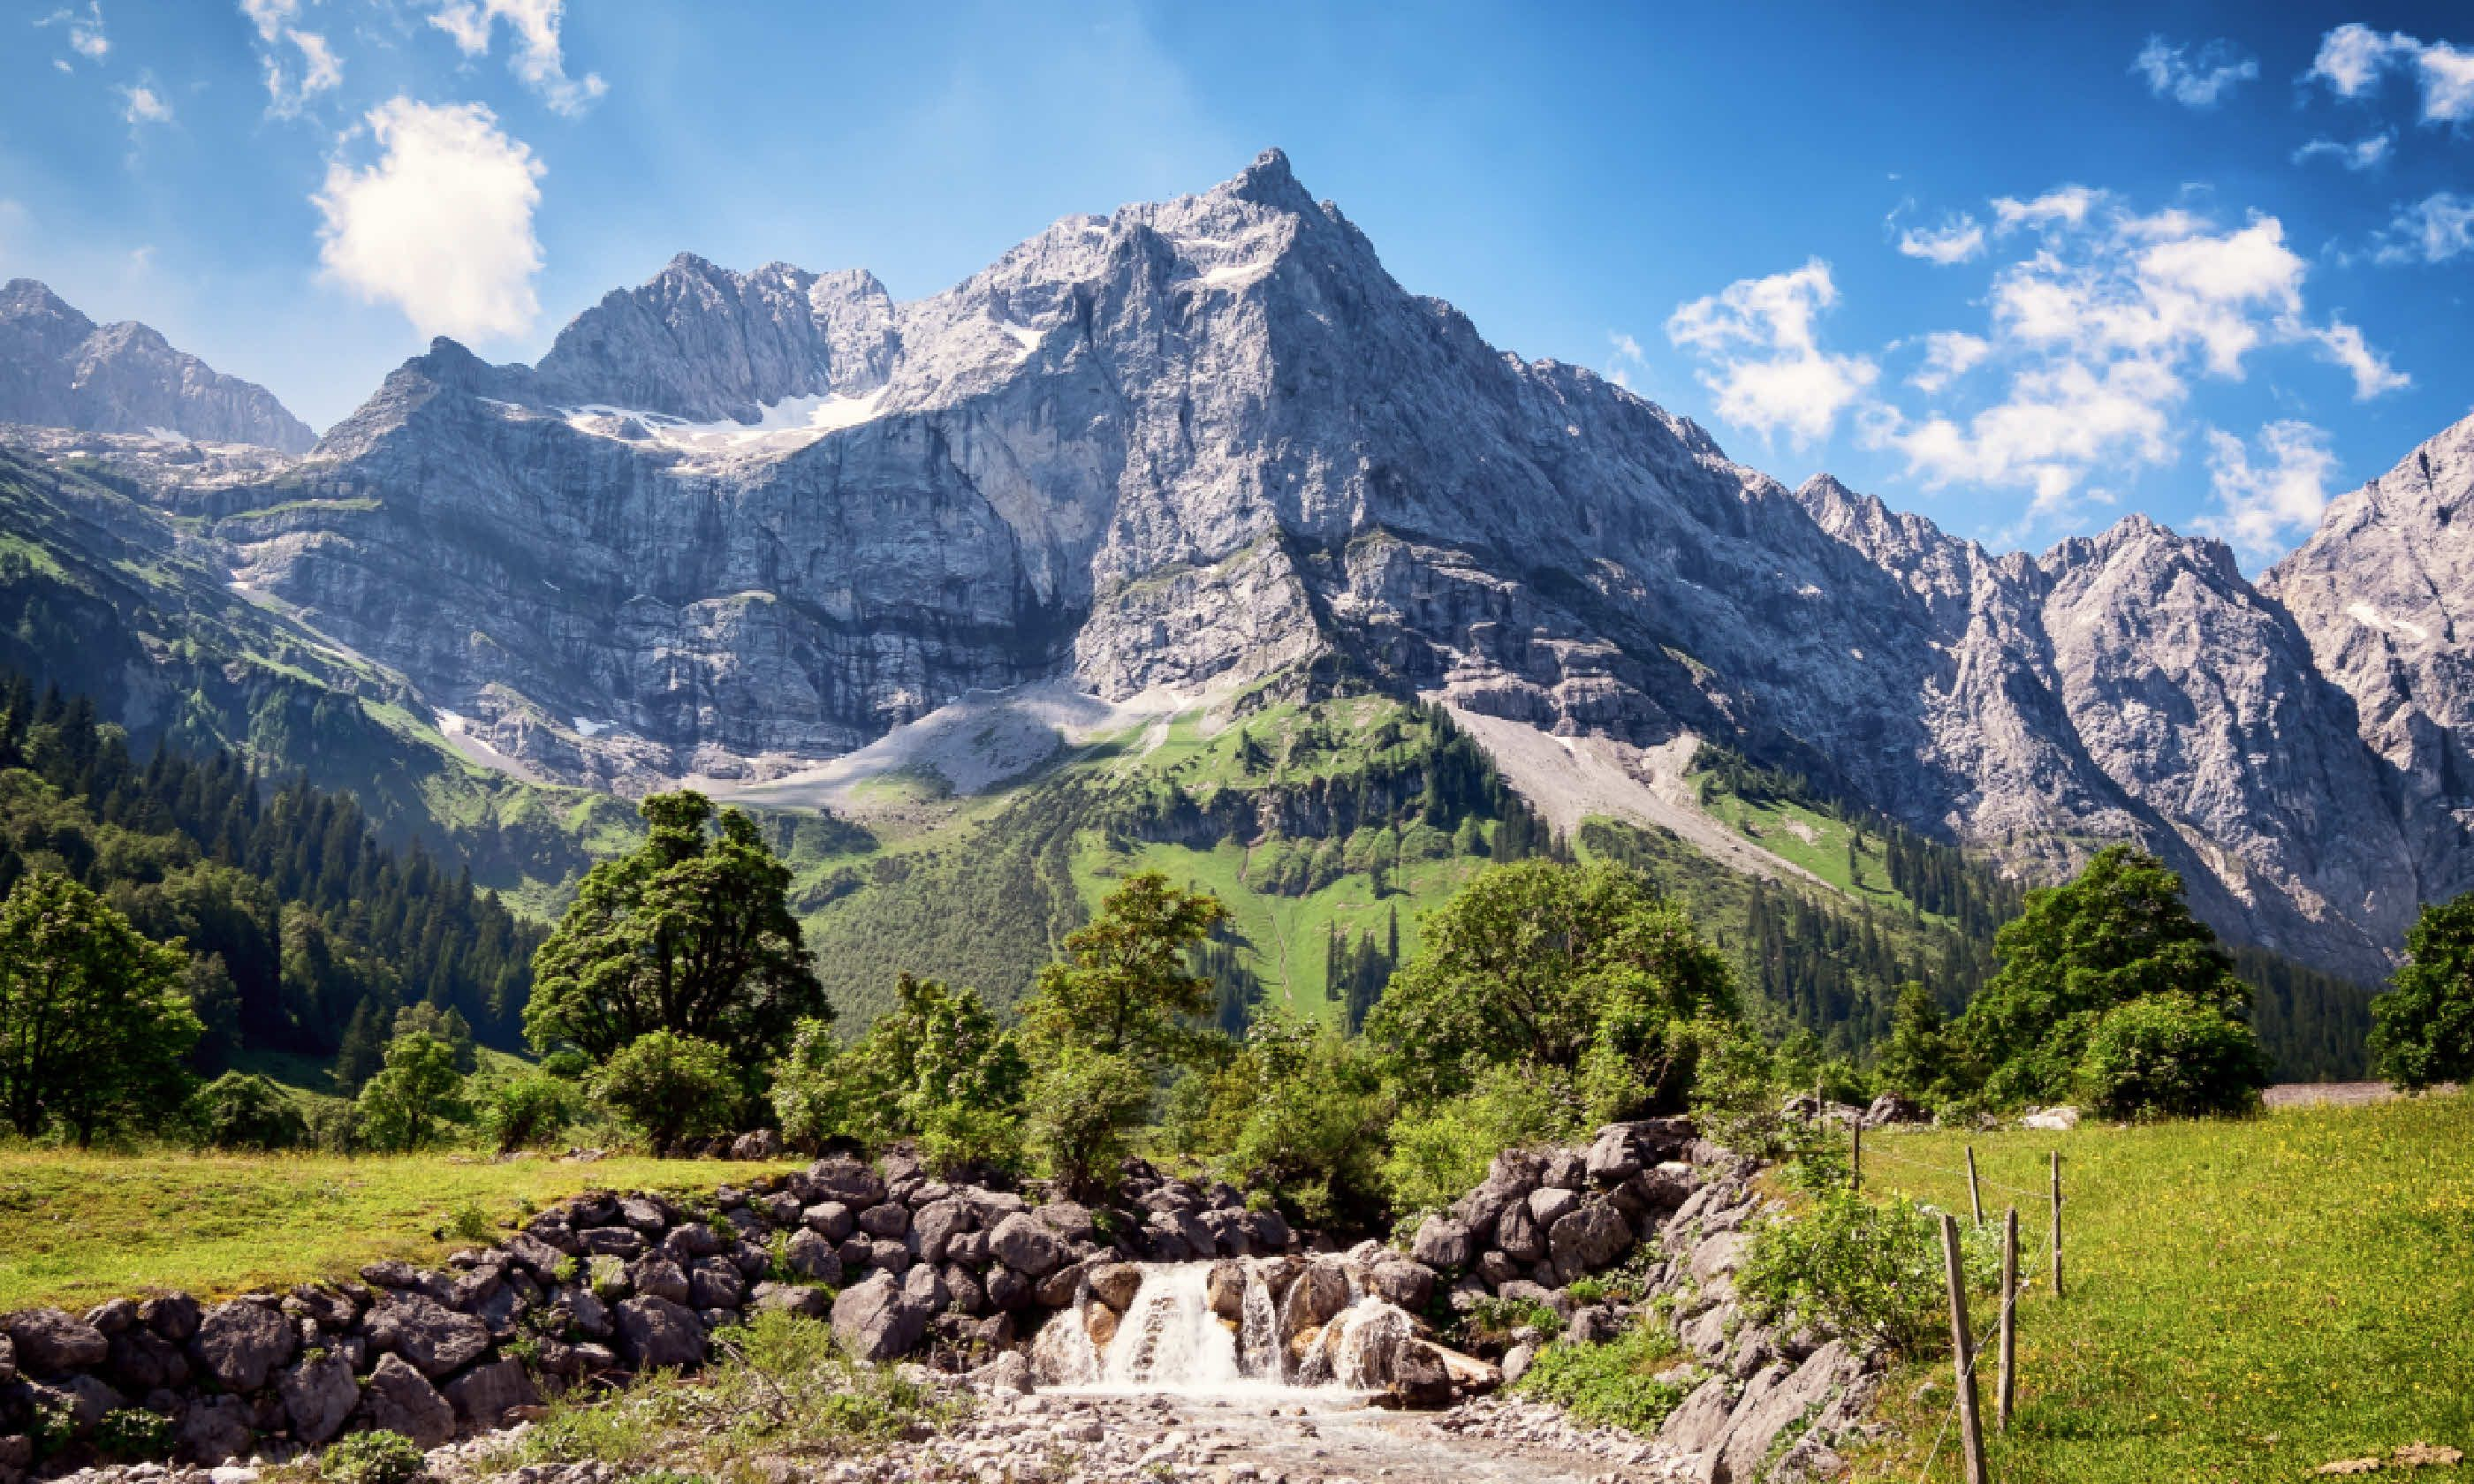 Karwendel mountains in Austria (Shutterstock)